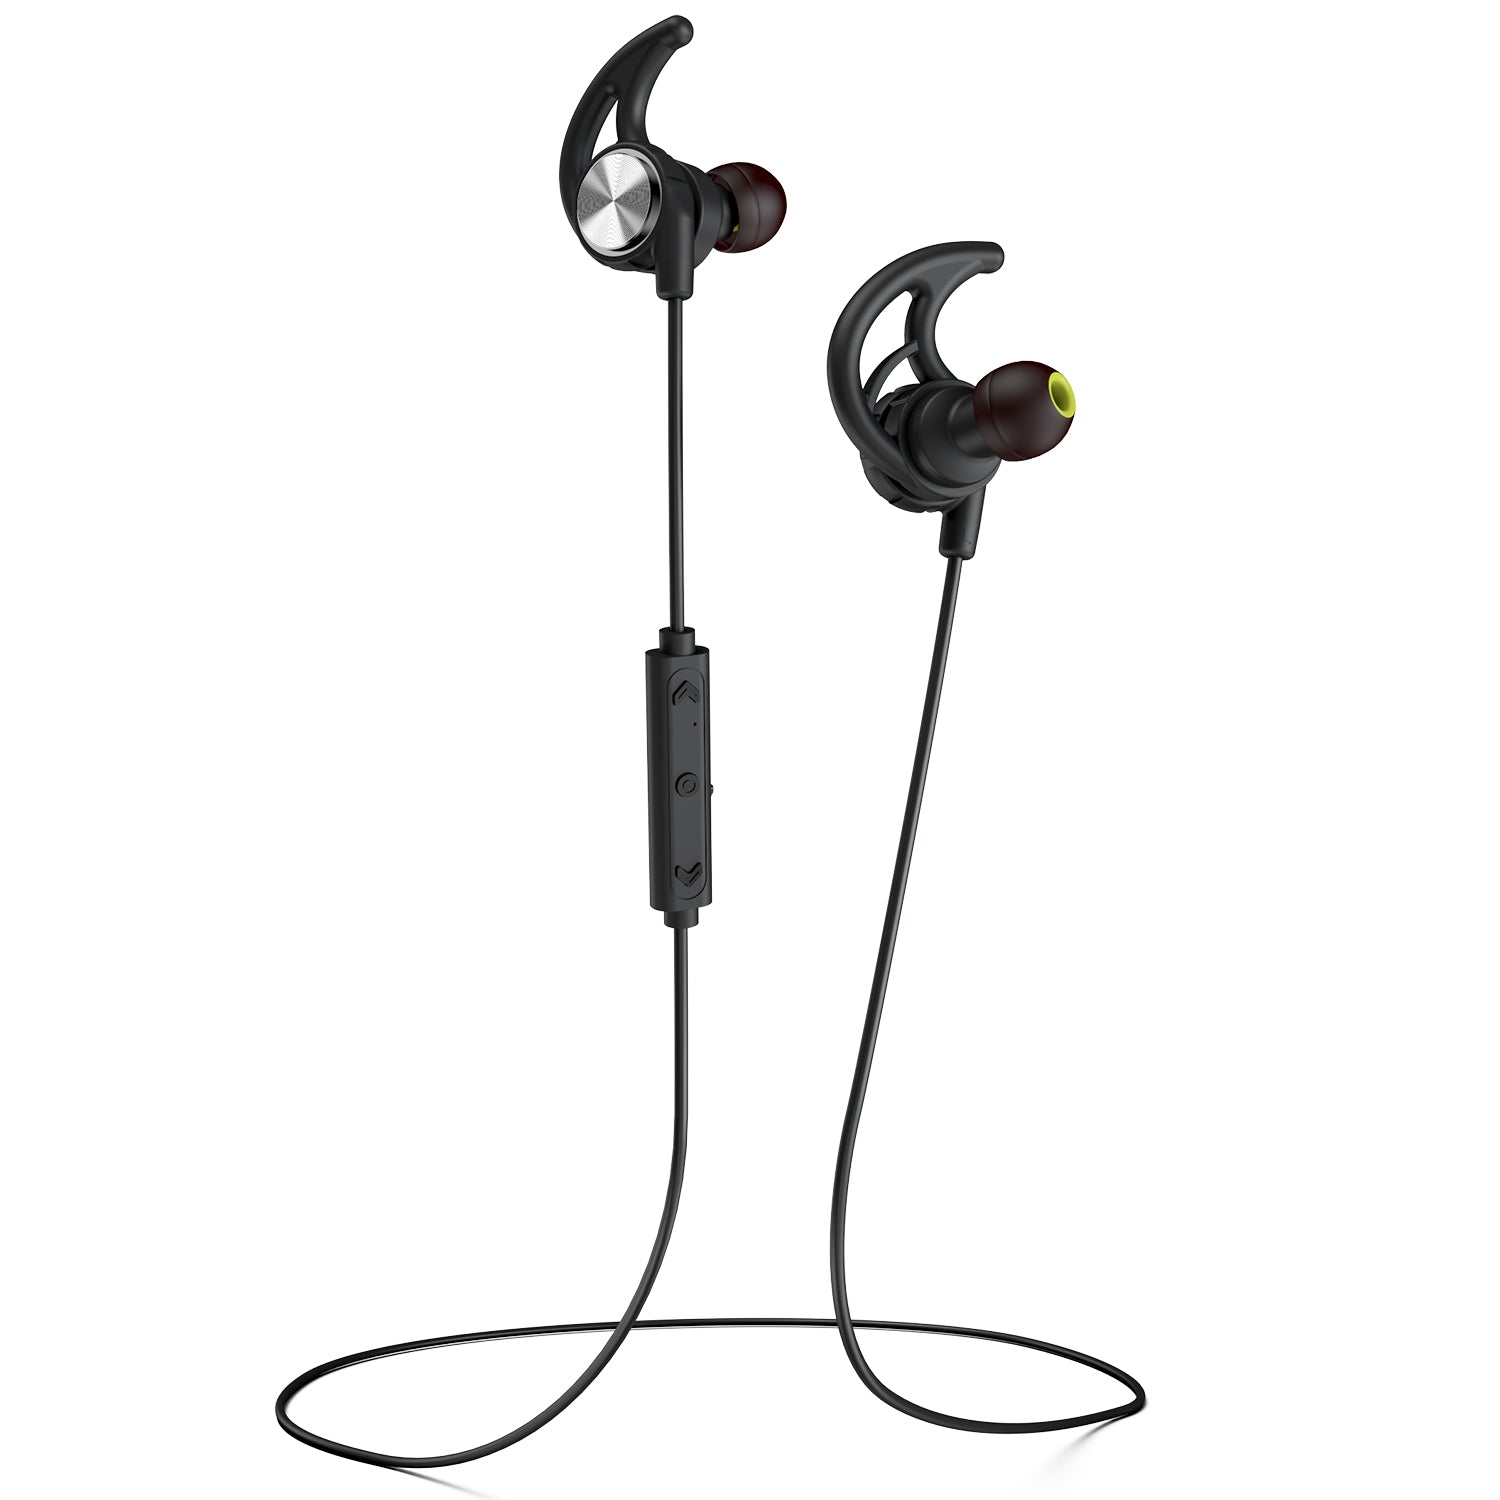 Phaiser BHS-750 Bluetooth Headphones